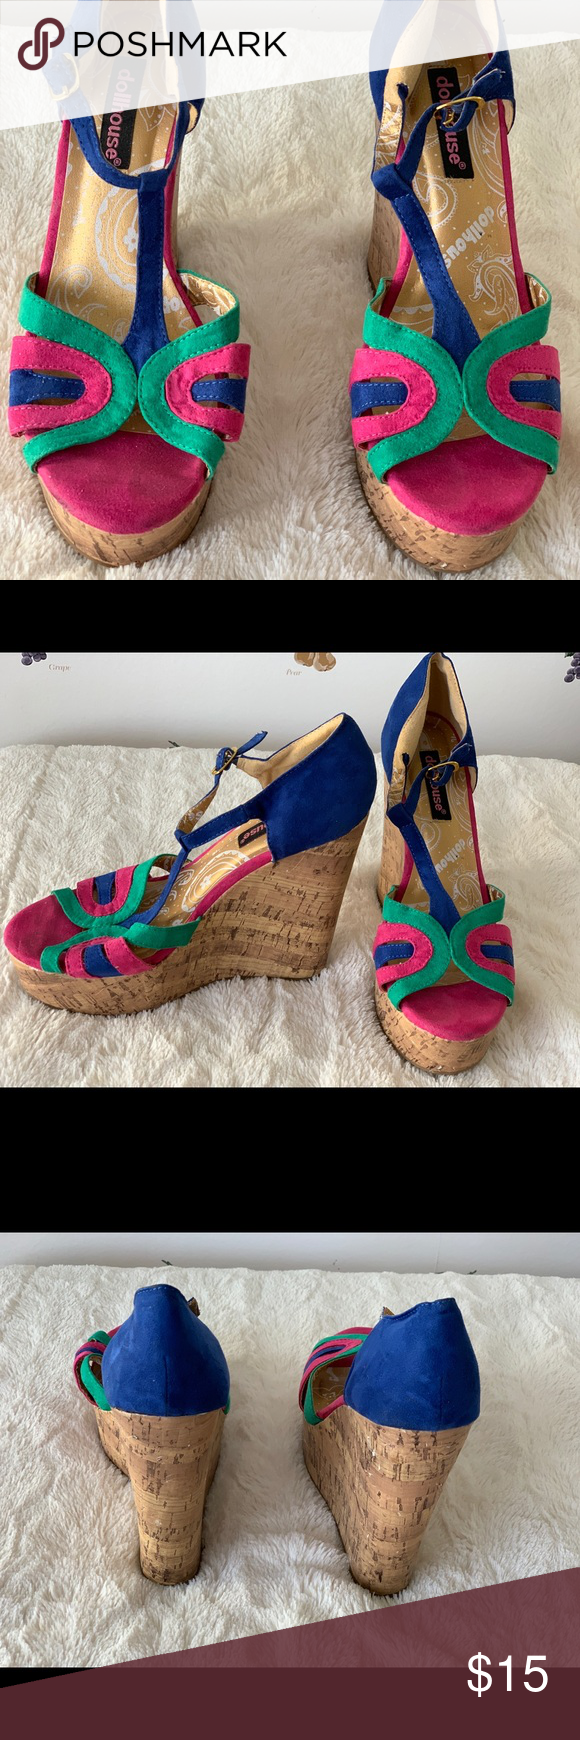 c8f9db6474 Multi Color Wedge- Size 7 Multi Color Wedge- Size 7 Suede Good condition  Dollhouse